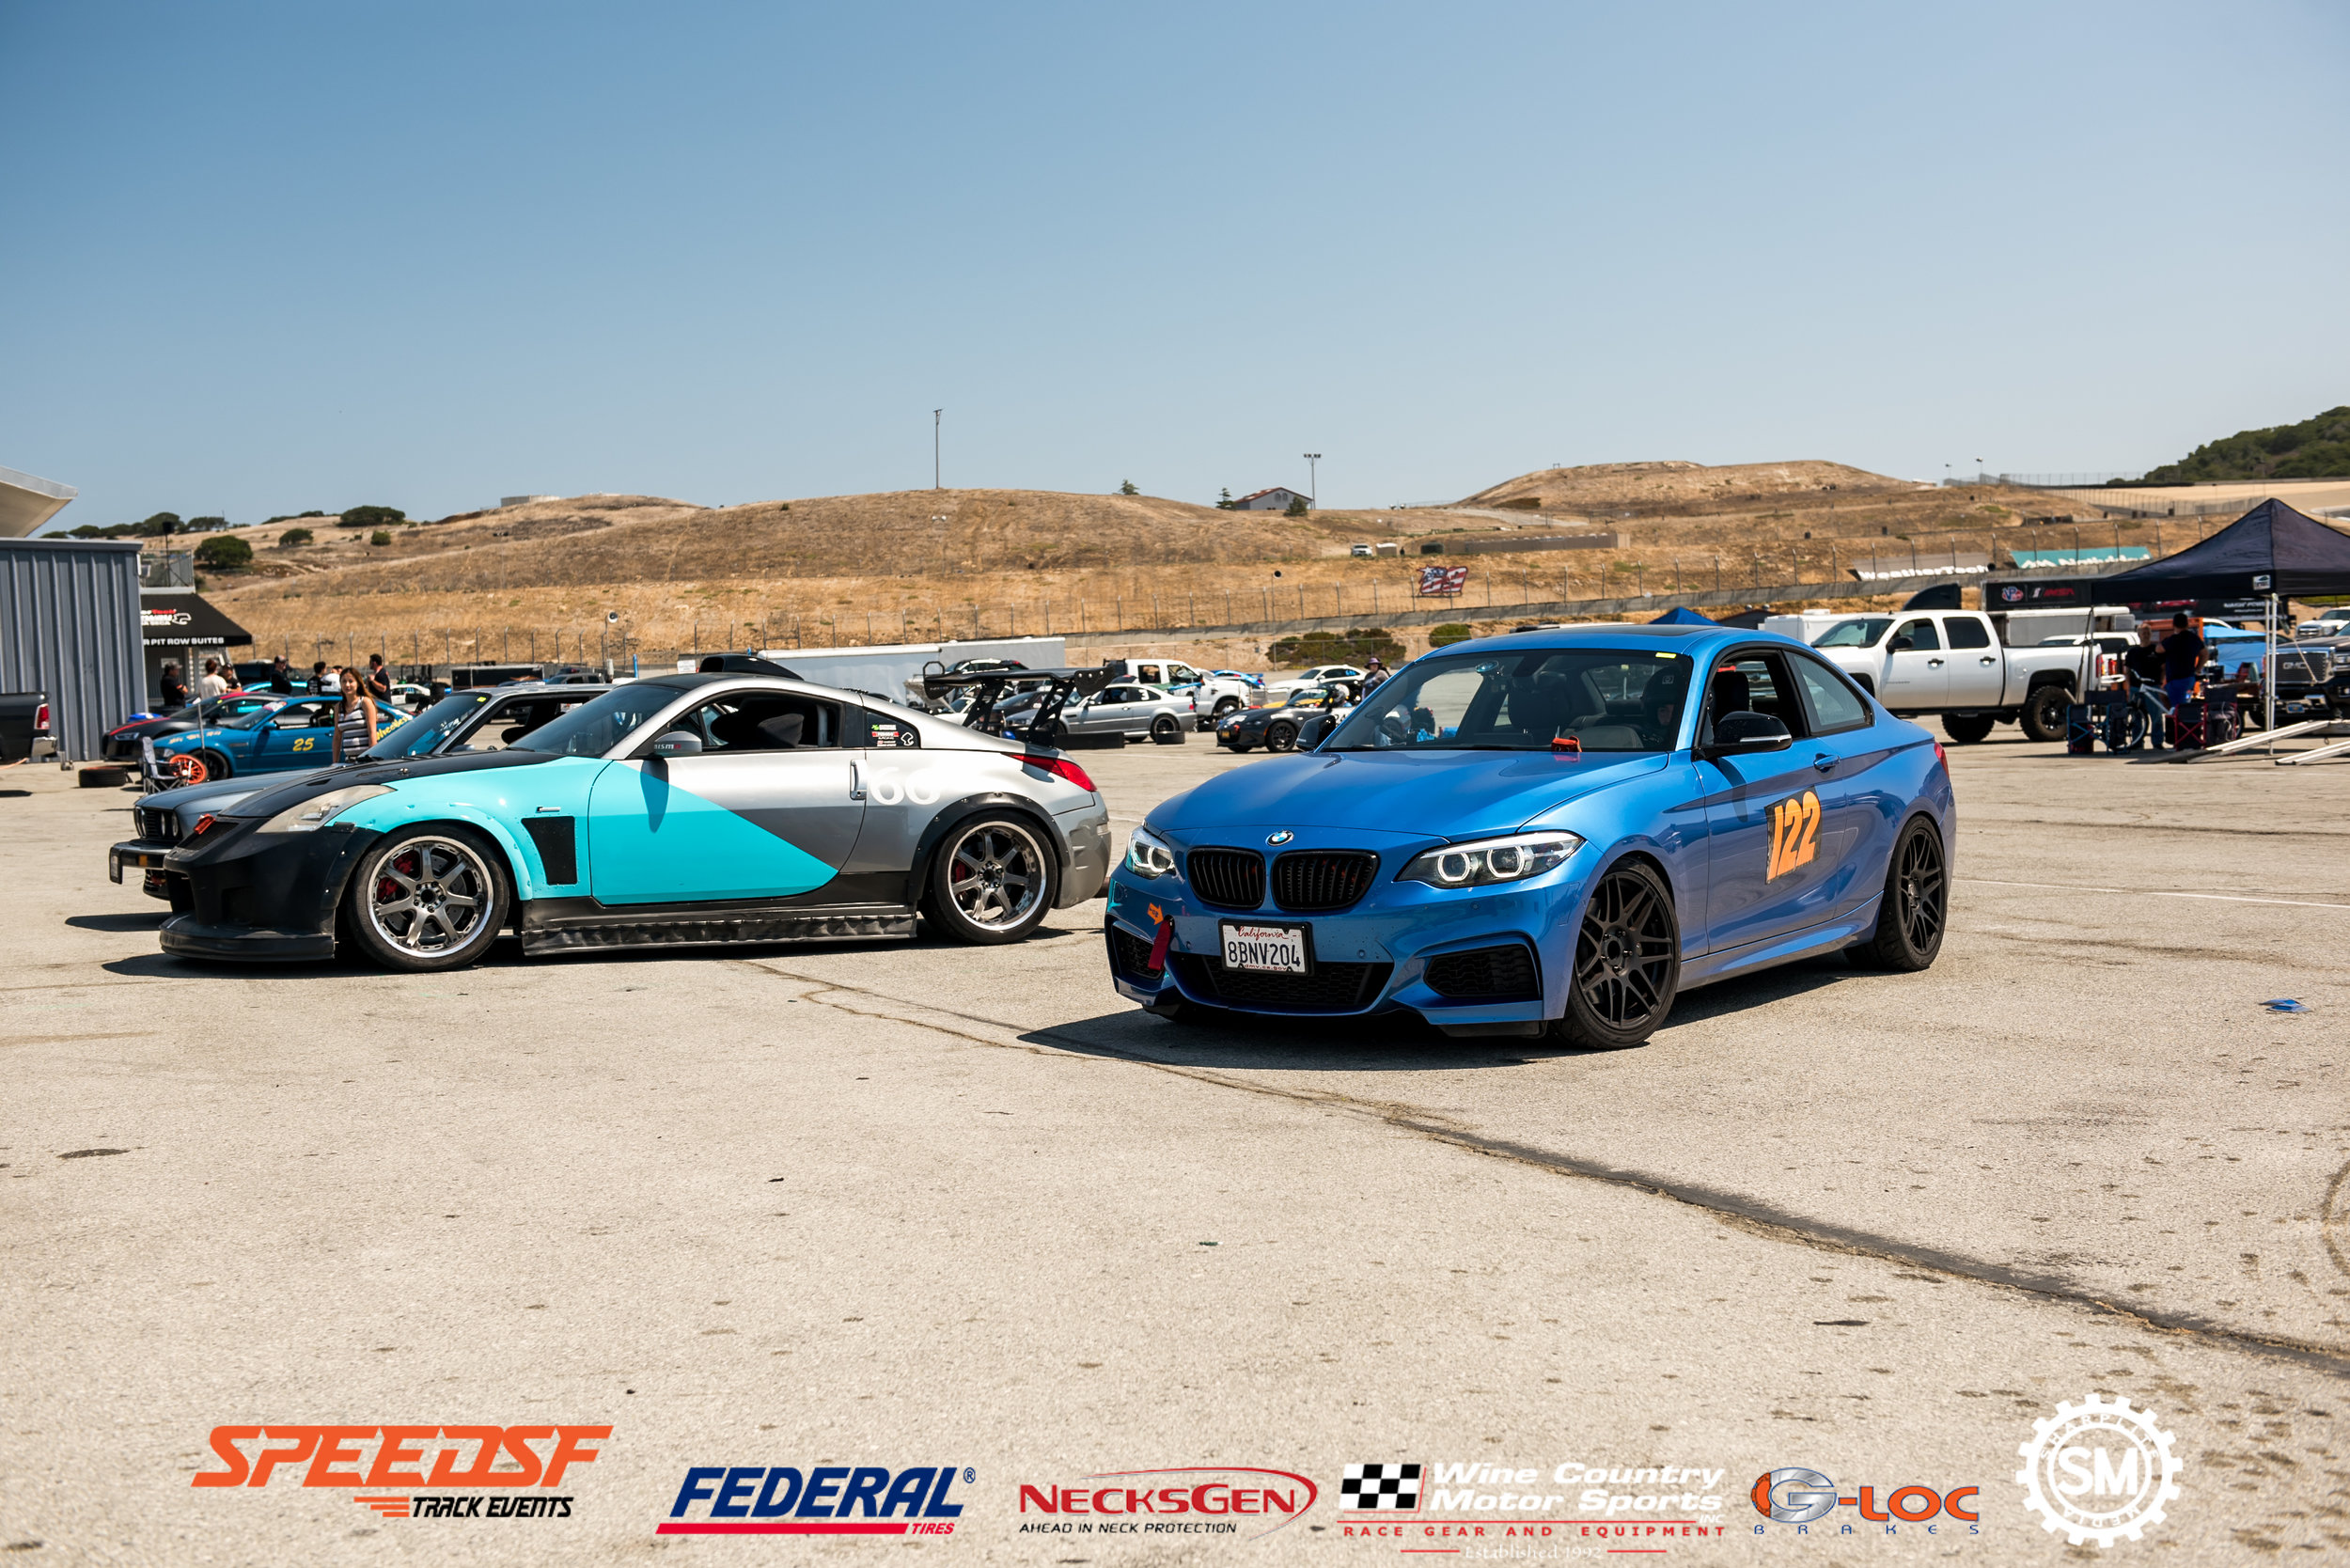 SpeedSF Paddock Sunday-35.jpg